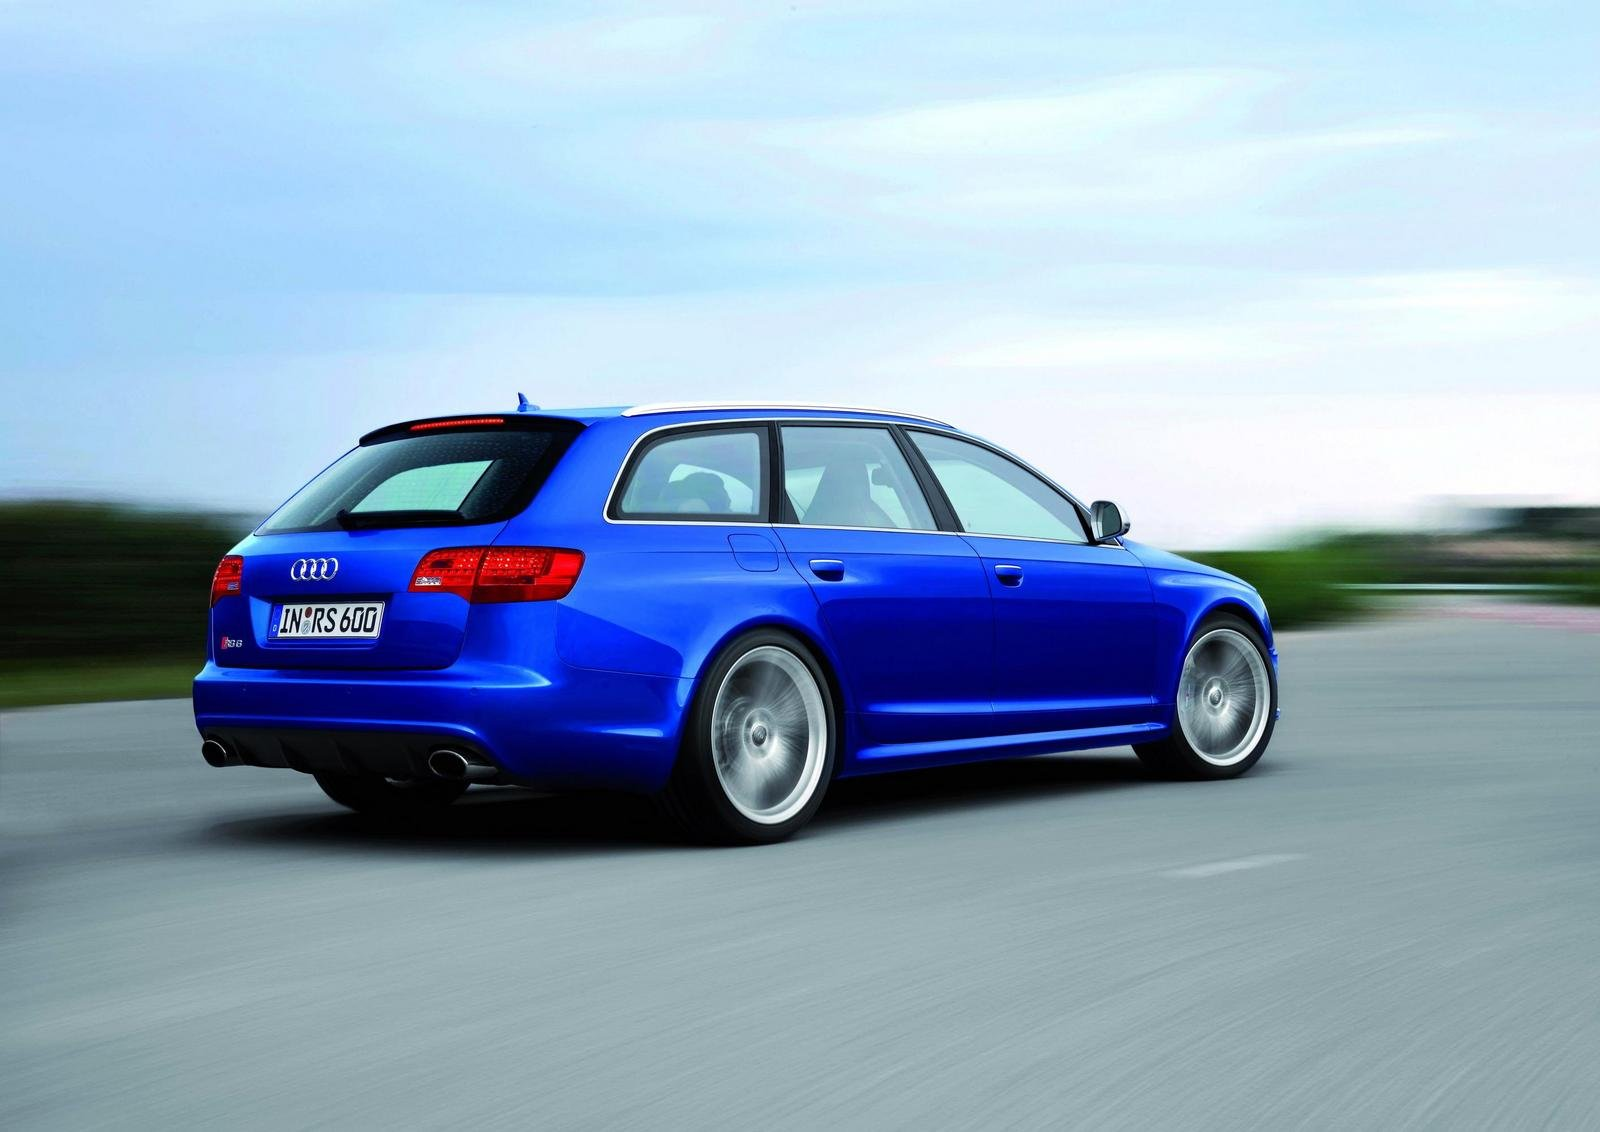 2008 audi rs6 avant picture 227842 car review top speed. Black Bedroom Furniture Sets. Home Design Ideas